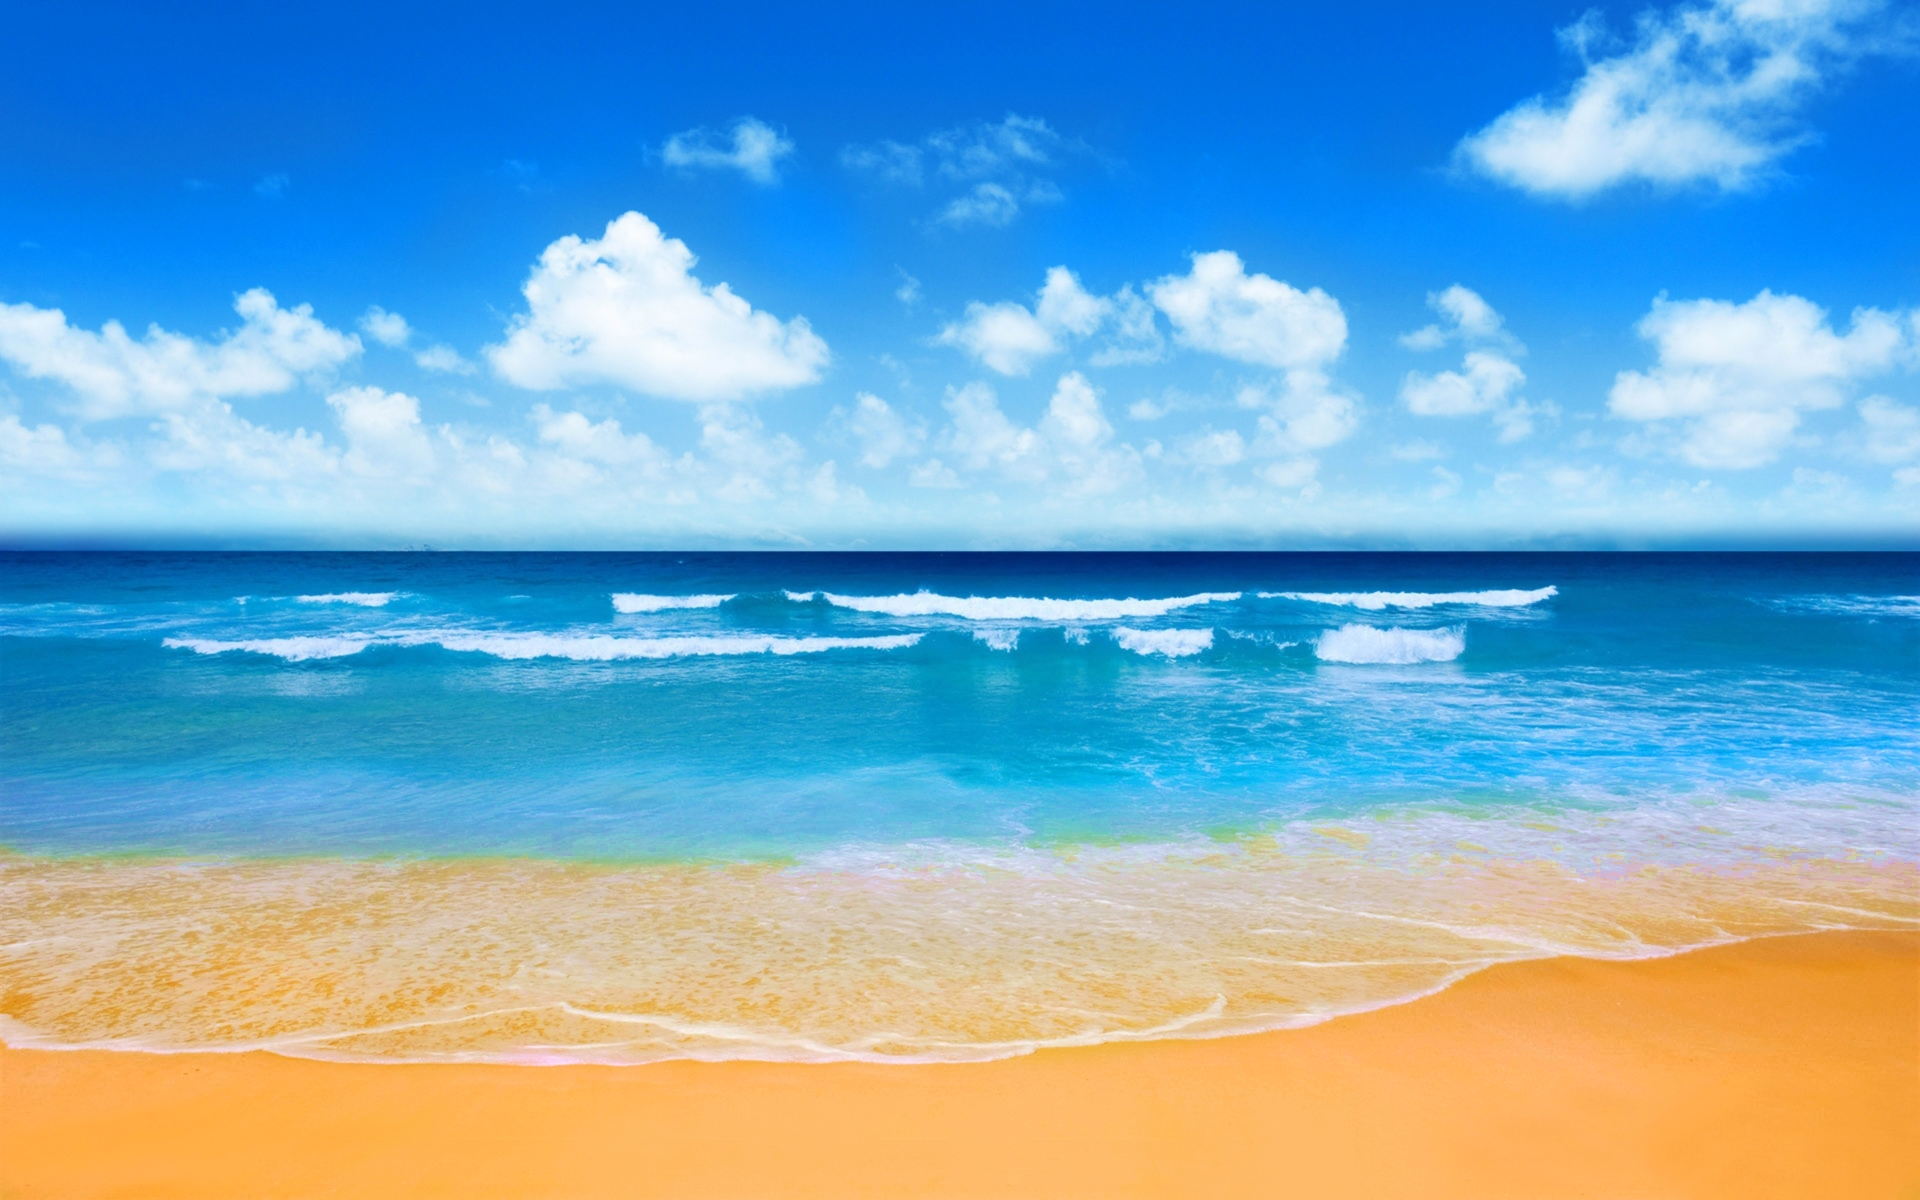 Beach Background Hd Desktop Wallpapers: Fondos De Pantalla De Playas, Wallpapers Beach Gratis